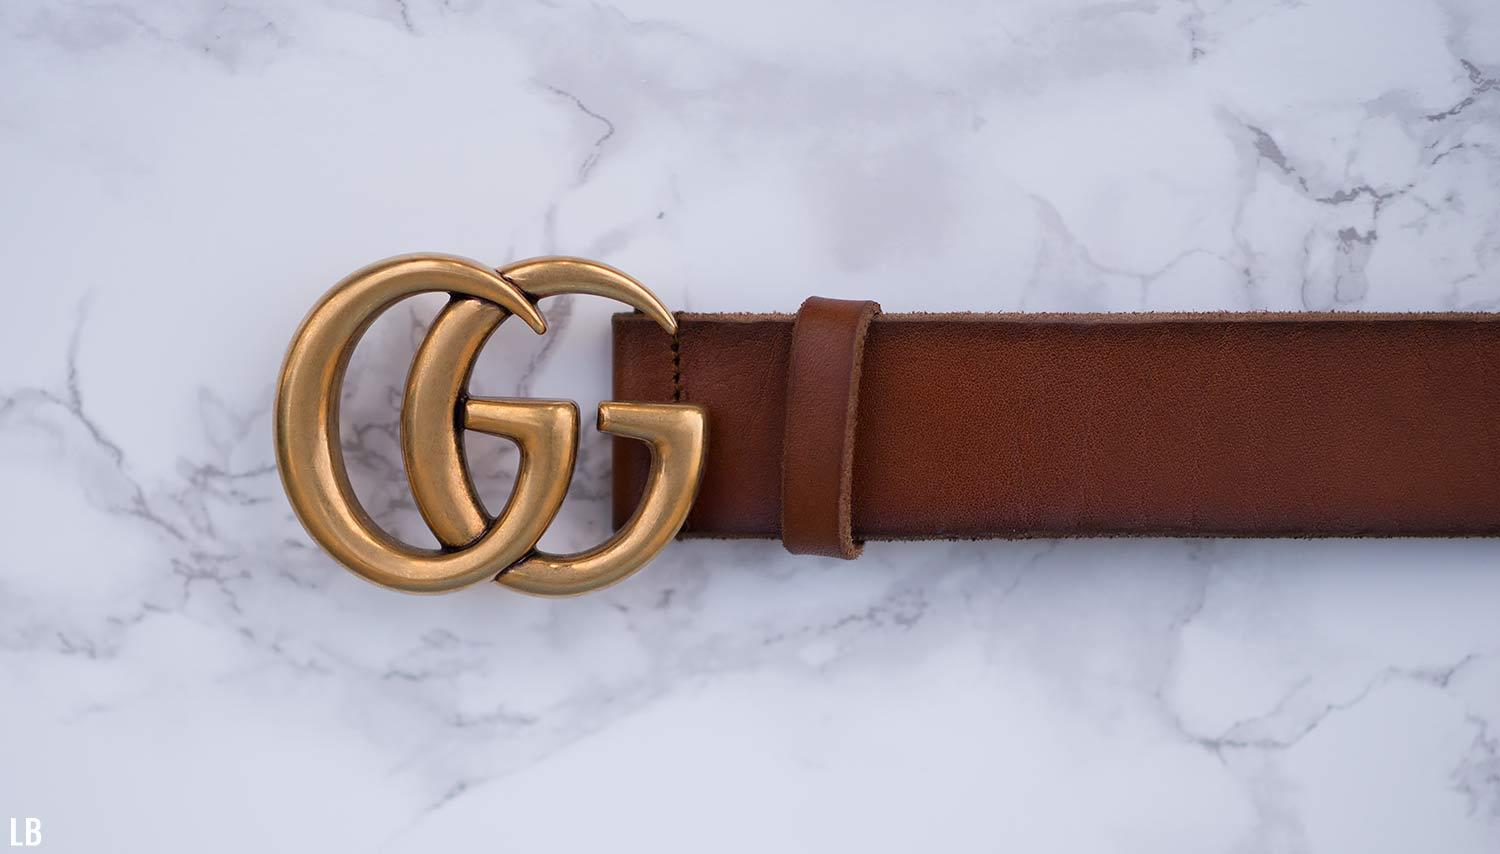 9b43c887c32 Buy this Gucci GG Belt in the UK here   in the US here